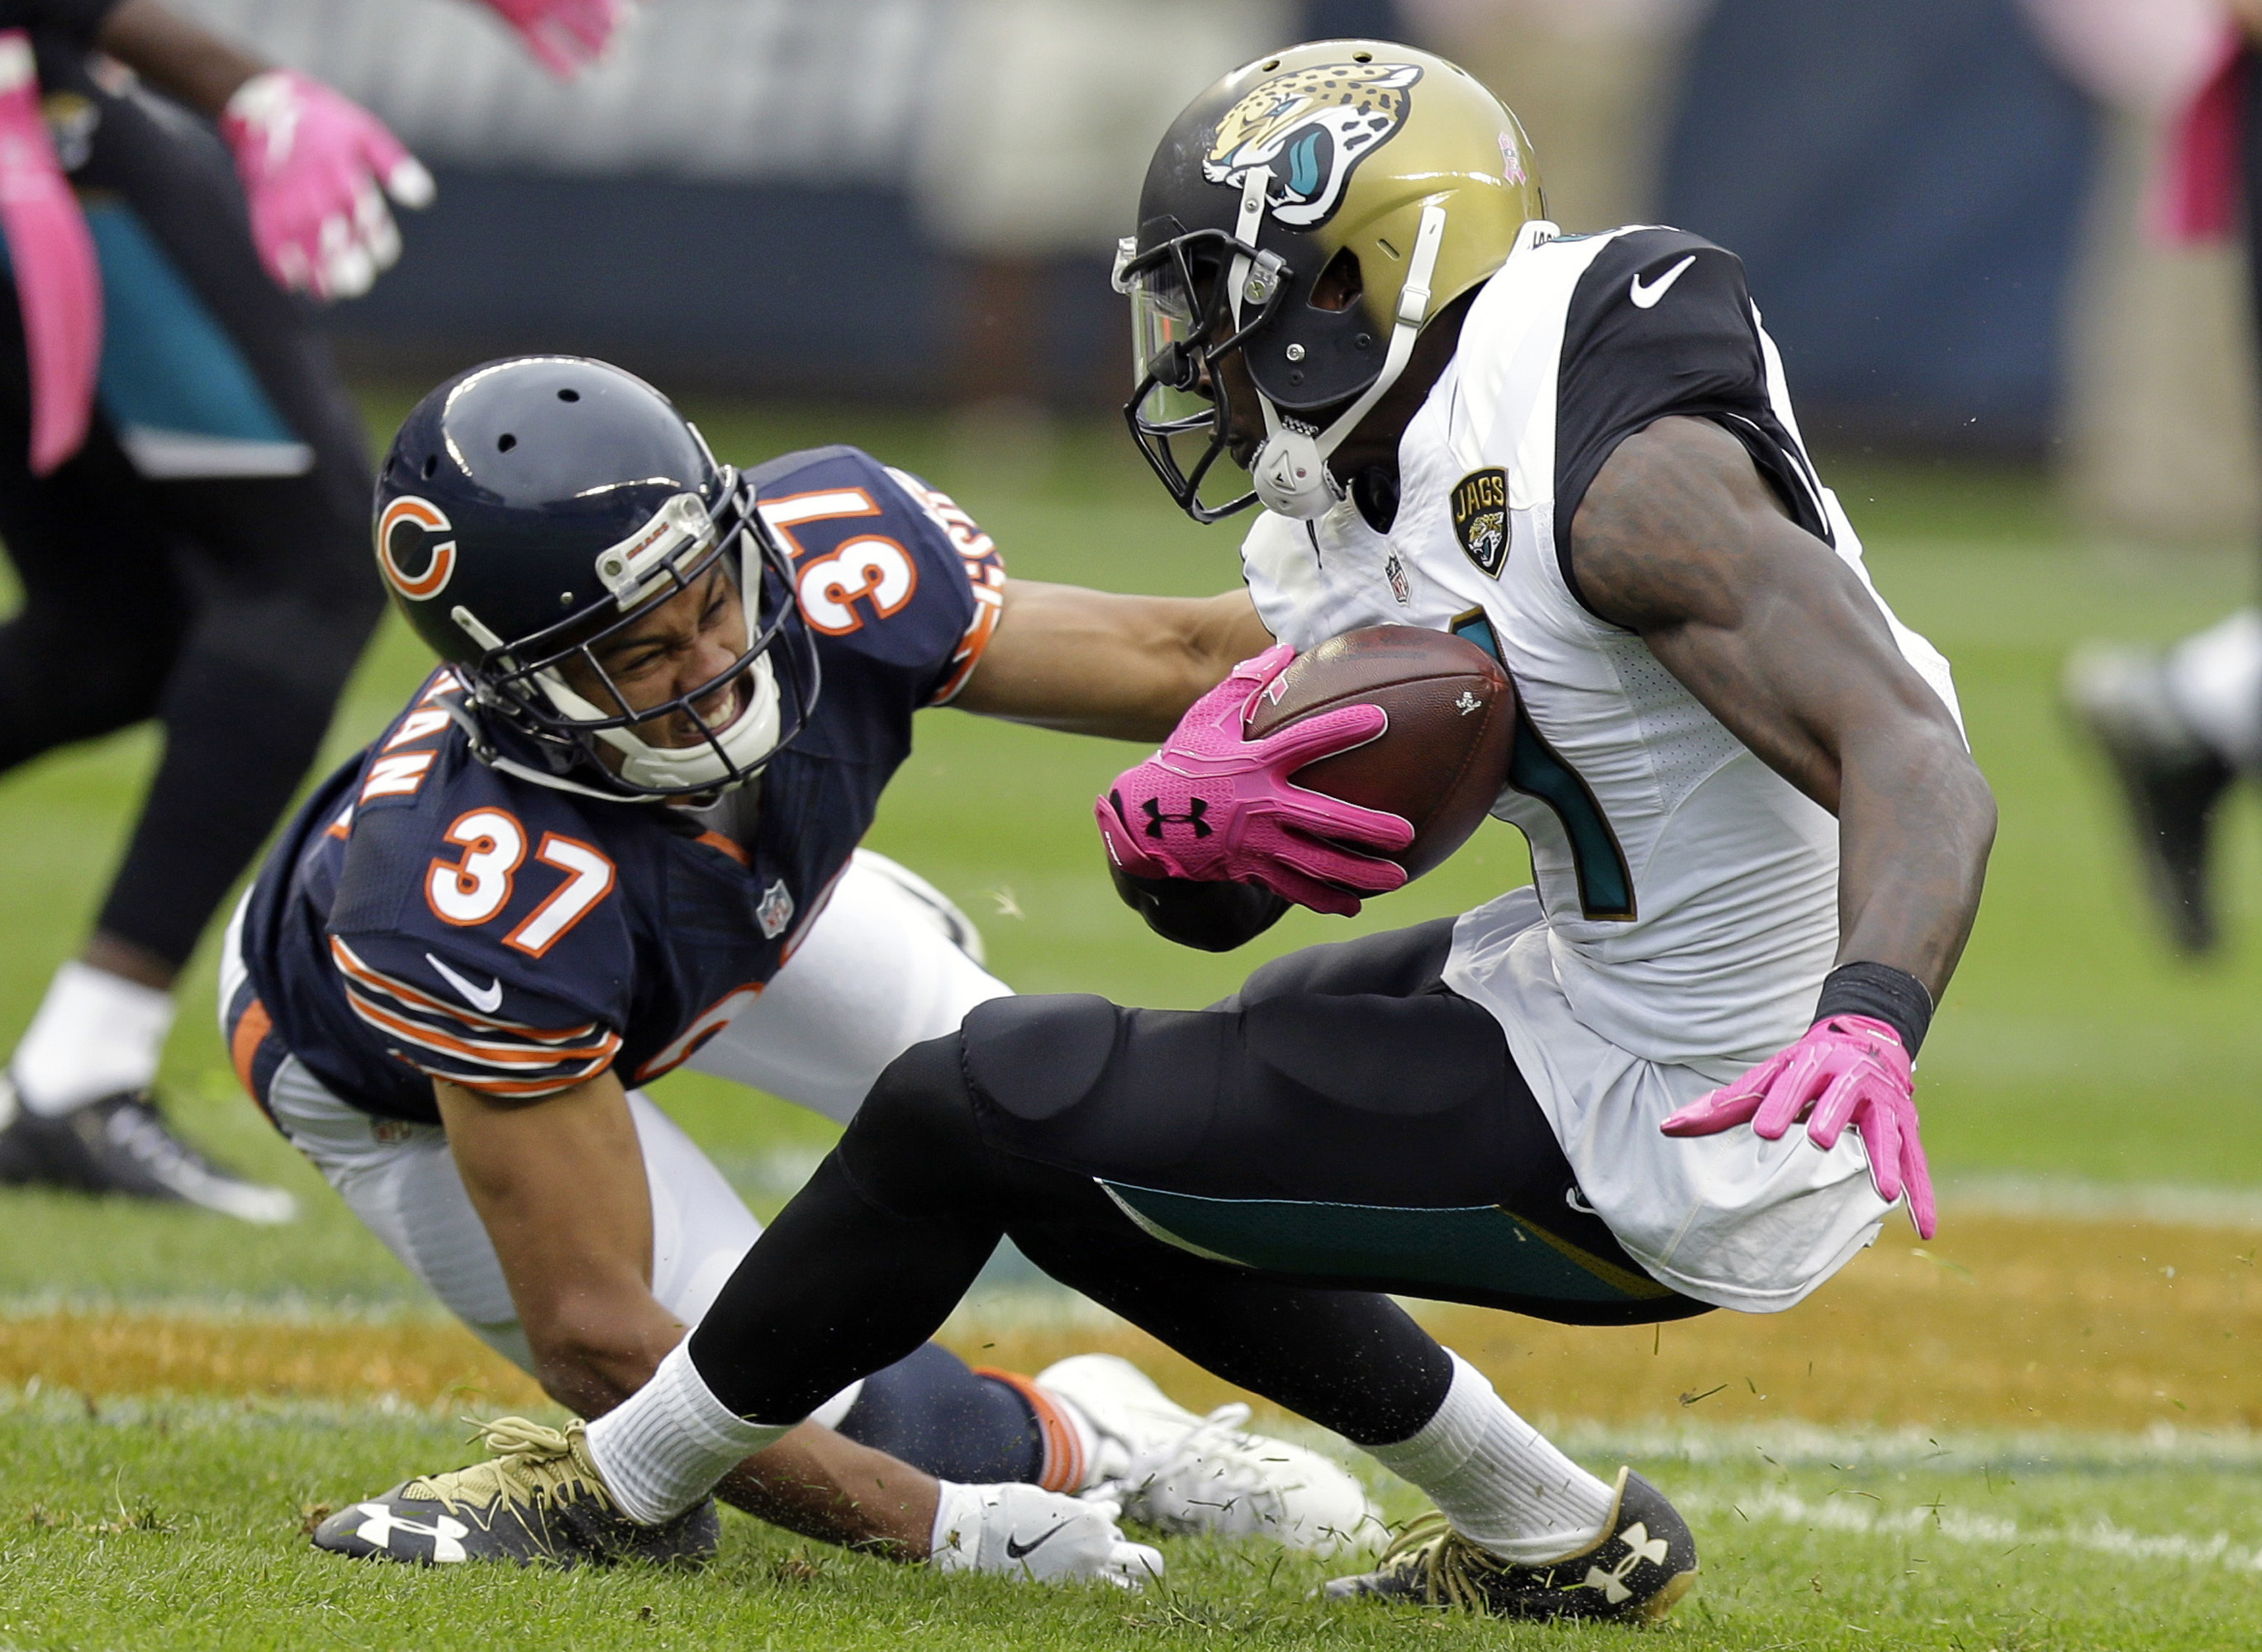 Jacksonville Jaguars wide receiver Marqise Lee (11) breaks the tackle of Chicago Bears cornerback Bryce Callahan (37) after a catch during the first half of an NFL football game in Chicago, Sunday, Oct. 16, 2016. (AP Photo/Michael Conroy)